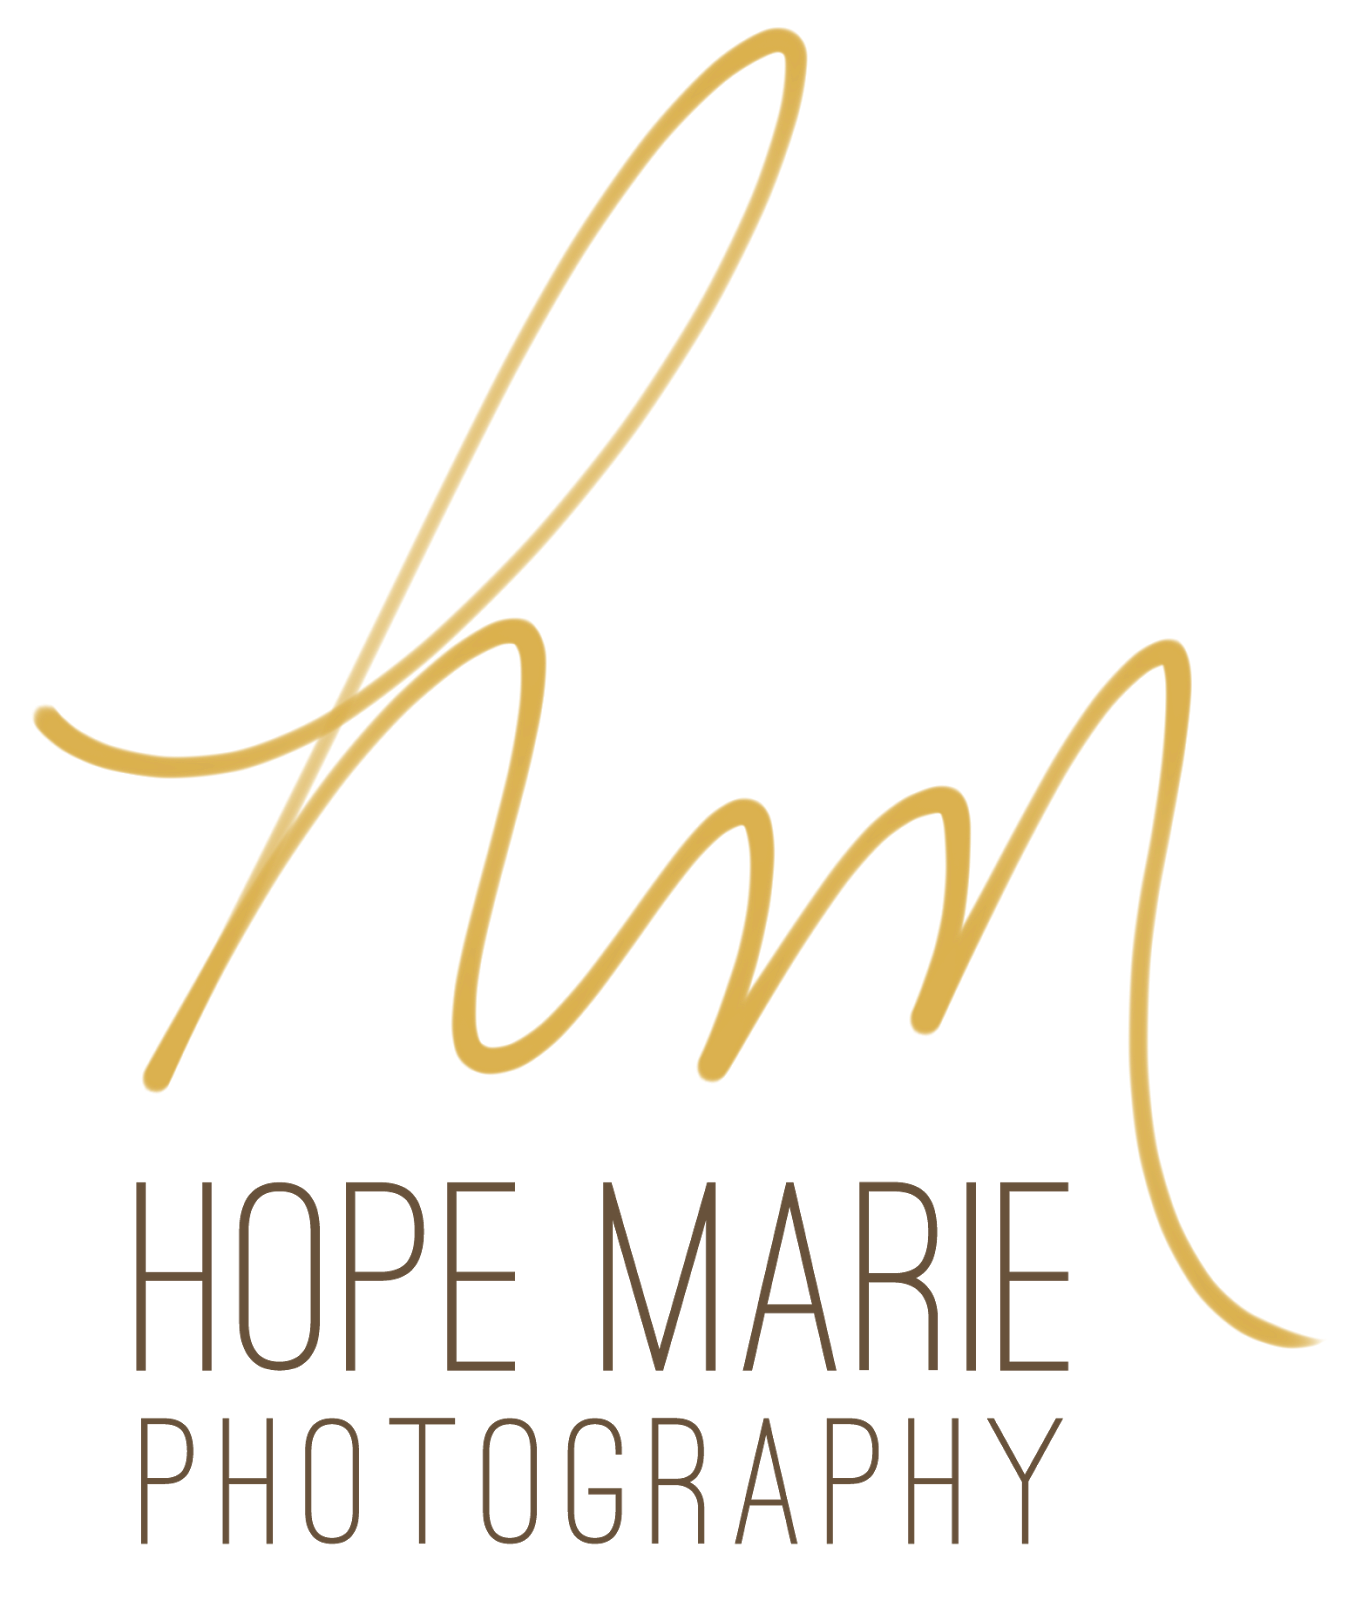 Hope Marie Photography